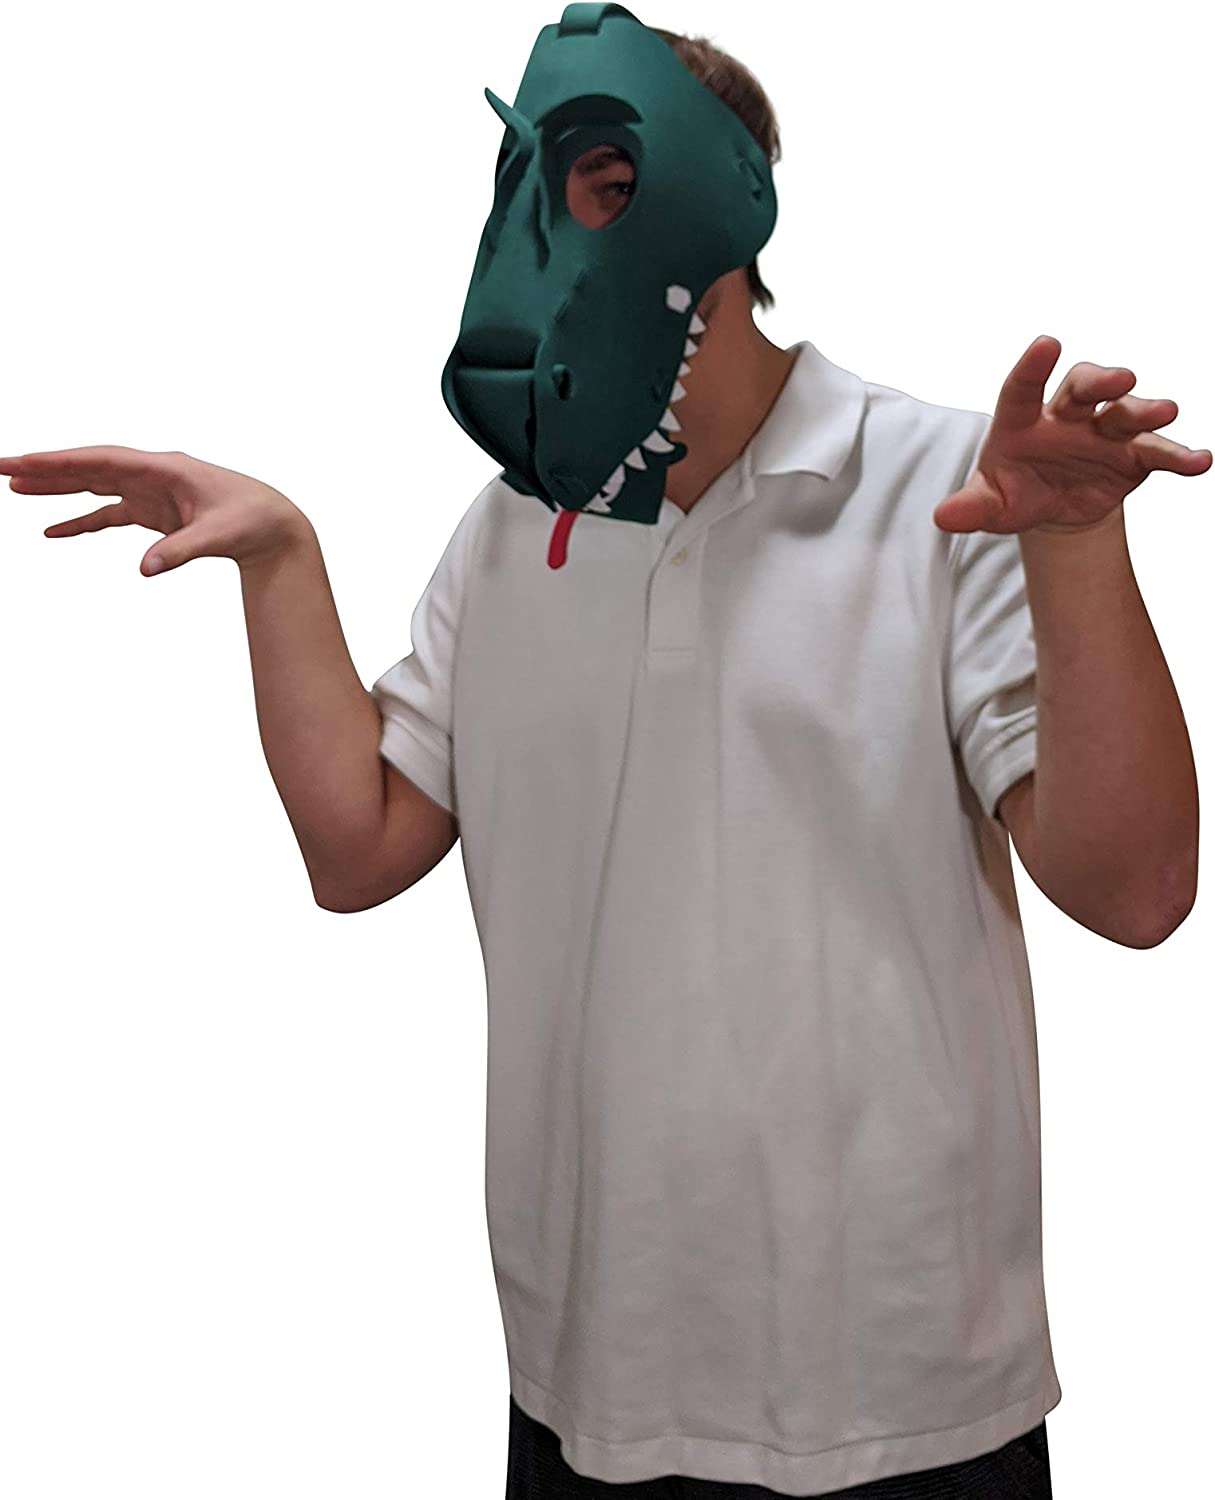 T-Rex Mask Animal Mask Costume Parties /& More Green Light /& Comfortable Tyrannosaurus Rex Mask Great for Halloween One Size Fits Adults /& Kids Sporting Events